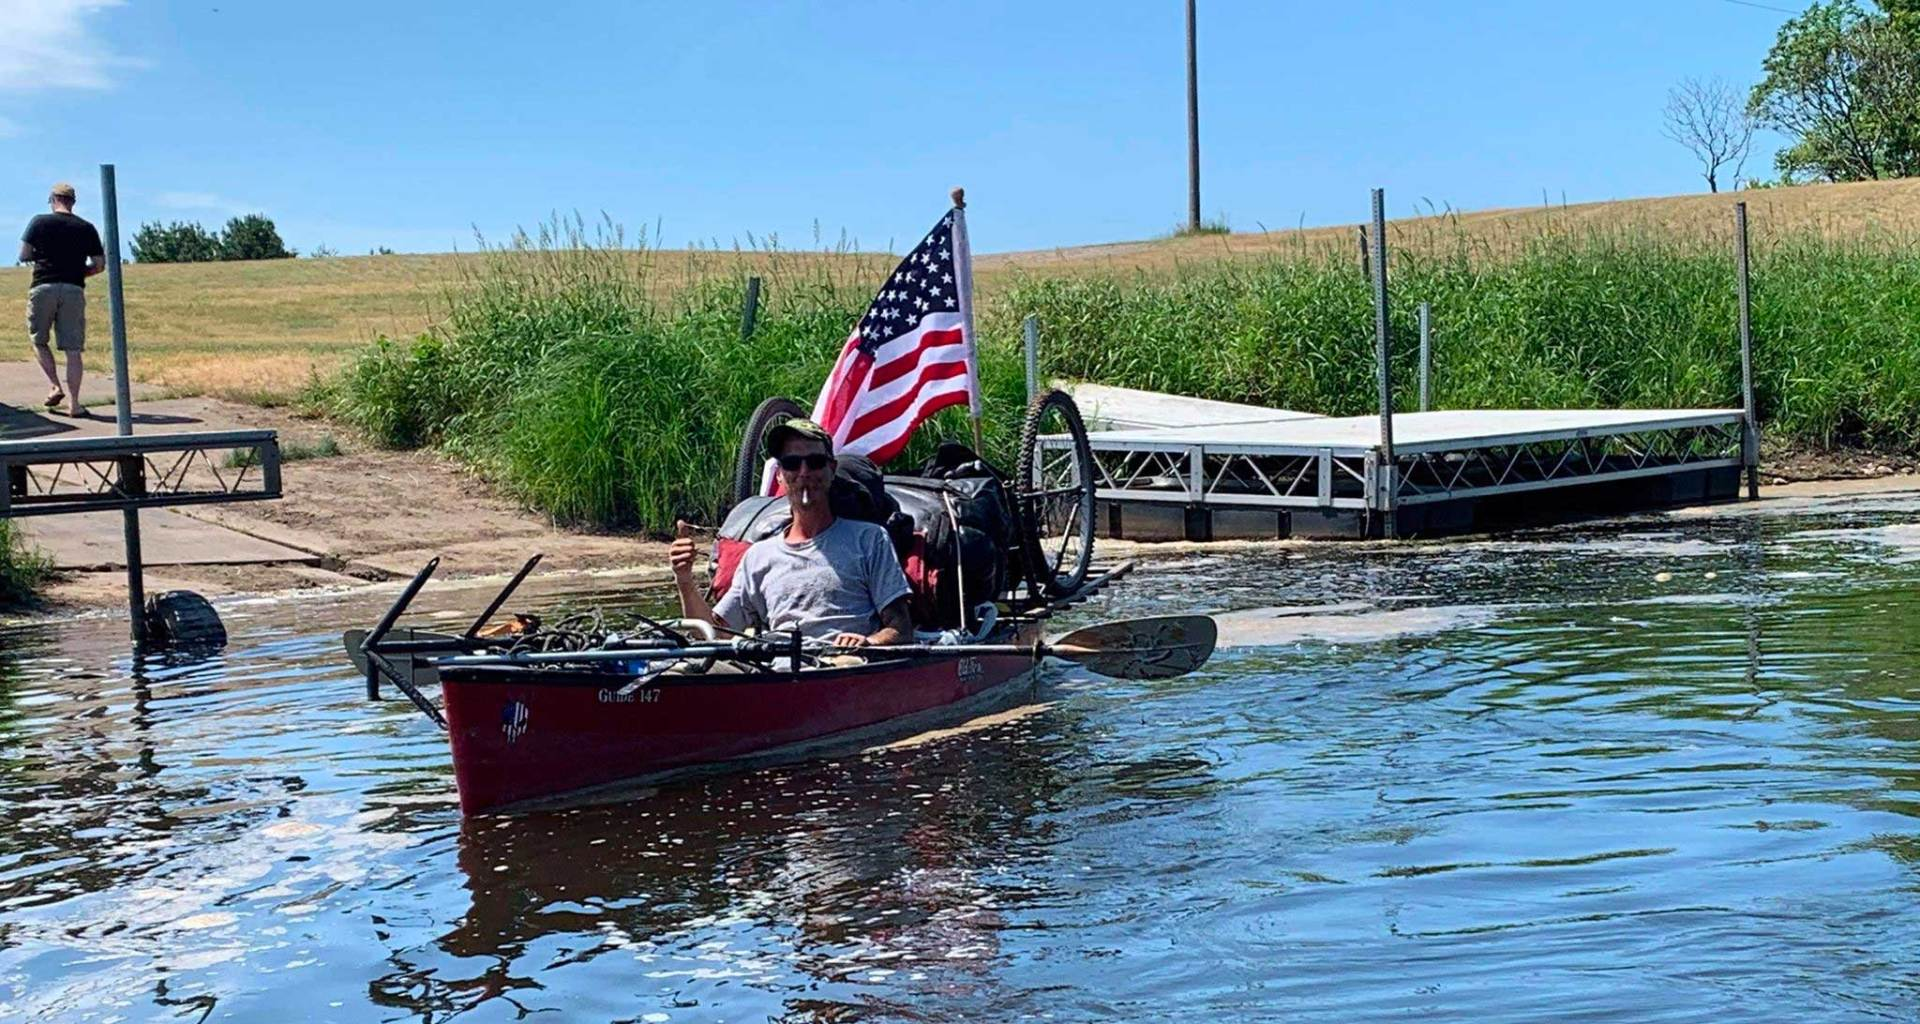 Man on canoe departing river launch point, with large American flag positioned at back of canoe.